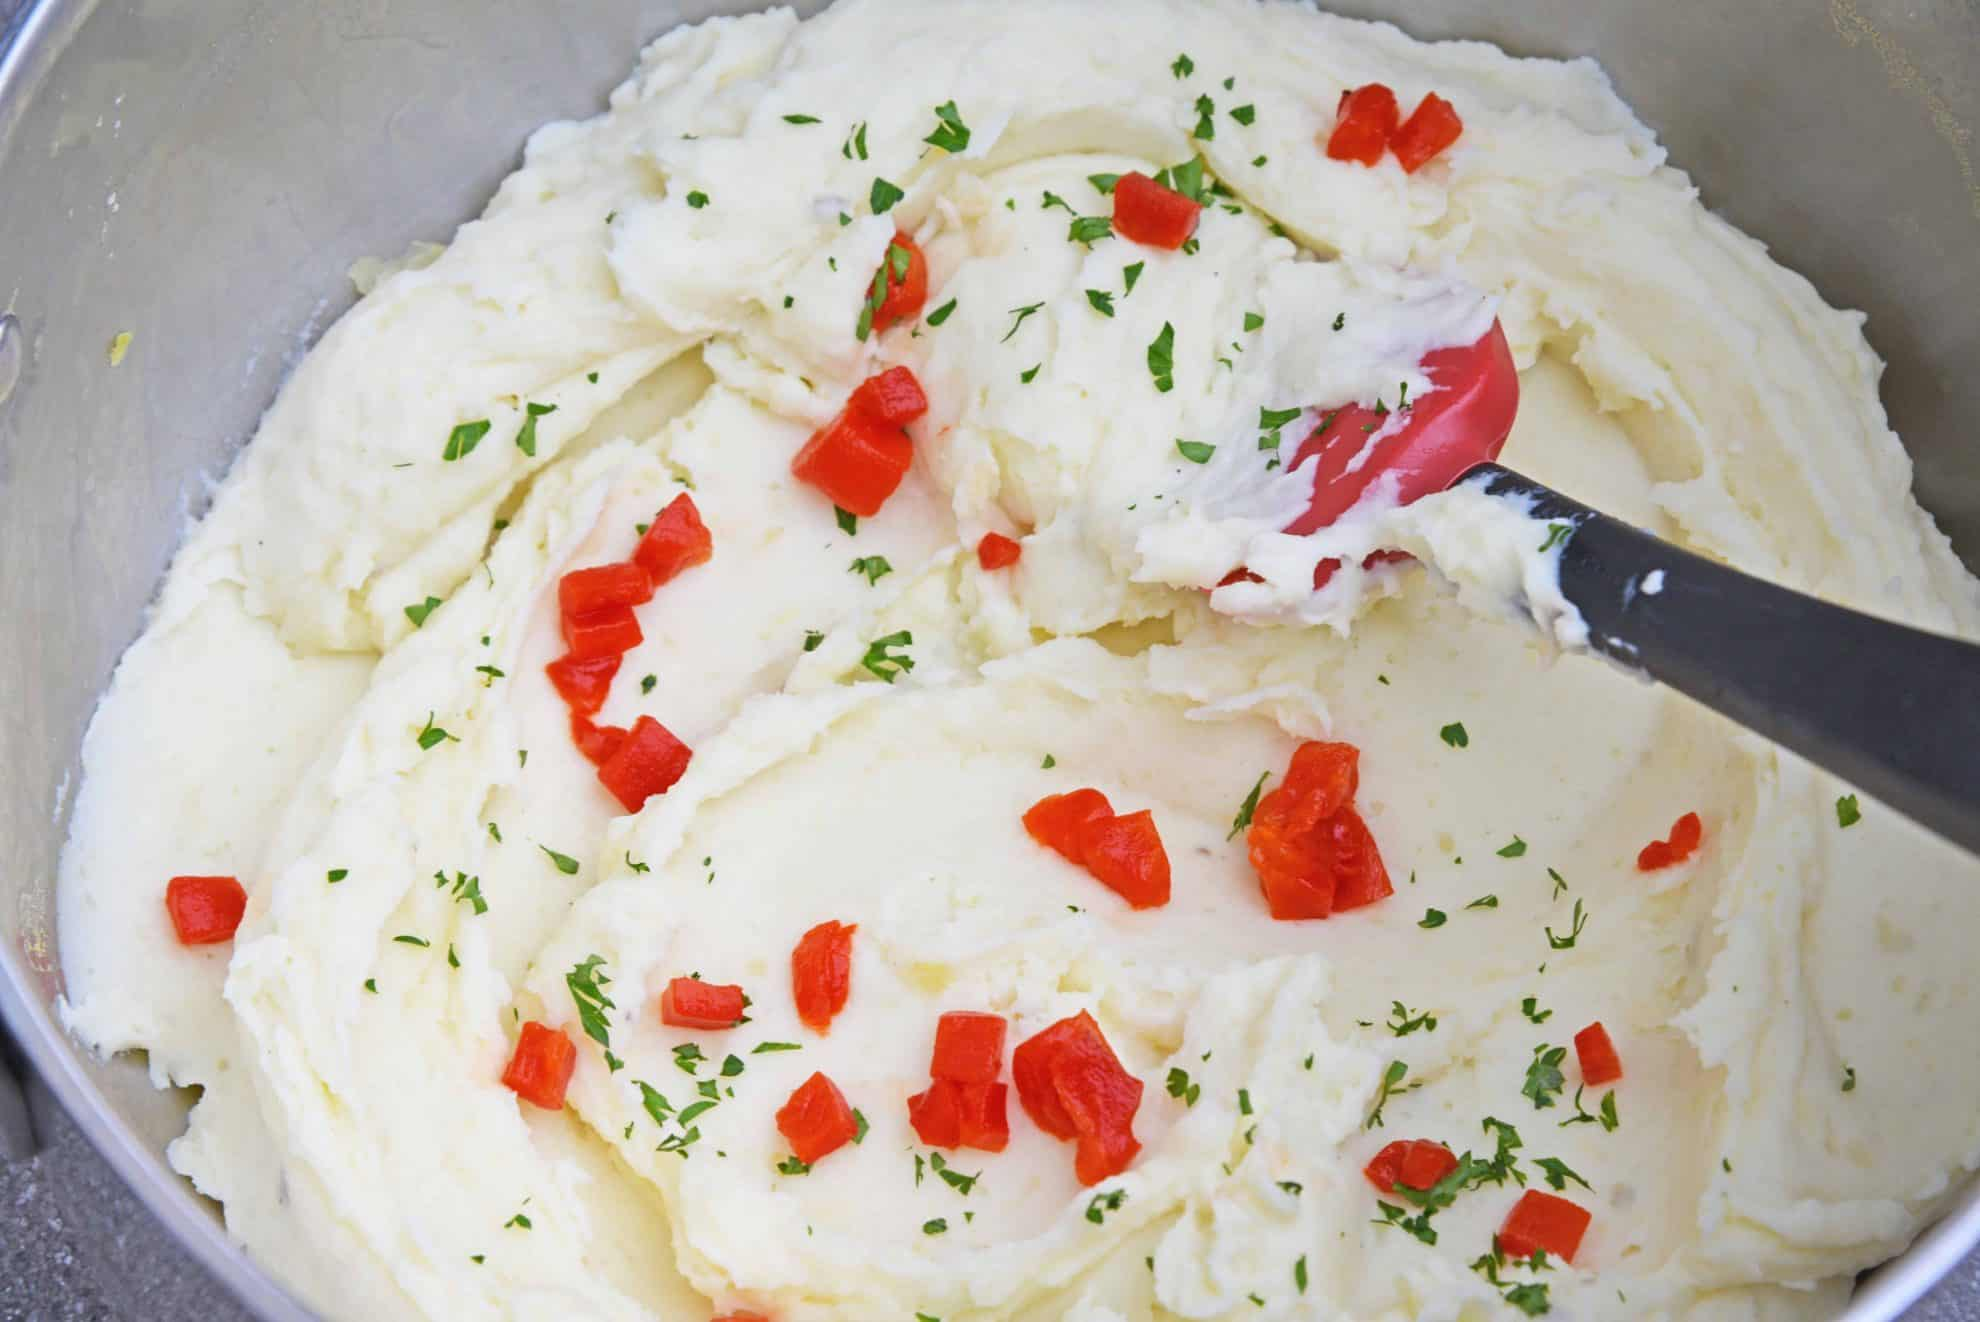 Mascarpone Mashed Potatoes take traditional mashed potatoes up a notch by adding creamy mascarpone and roasted red peppers! #howtomakemashedpotatoes #bestmashedpotatoes www.savoryexperiments.com